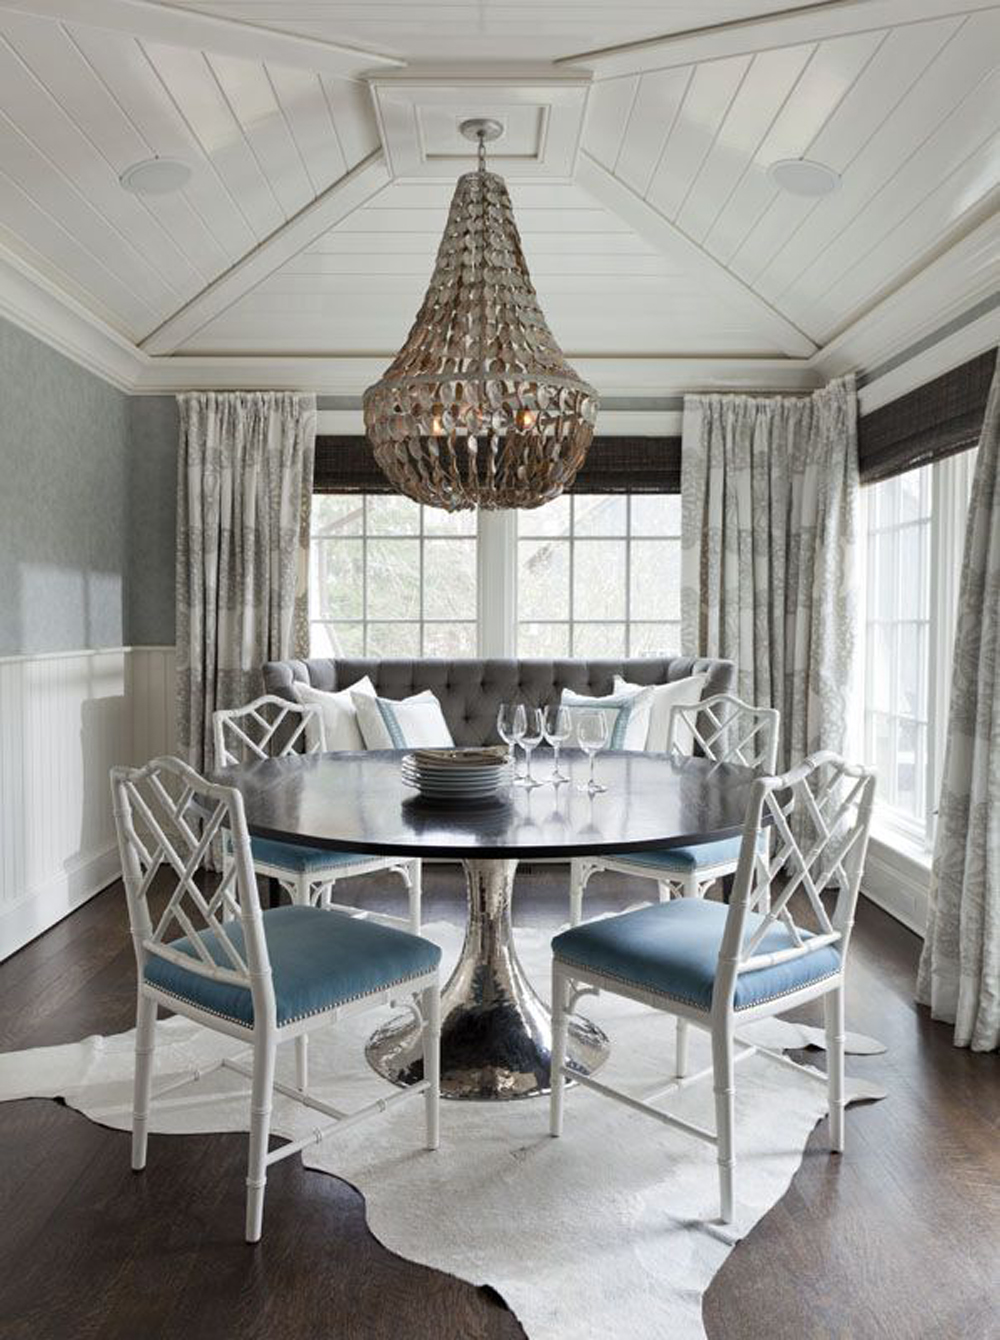 7 Summer Ready Luxury Dining Rooms To Inspire You 02 Luxury Dining Rooms 7  Summer